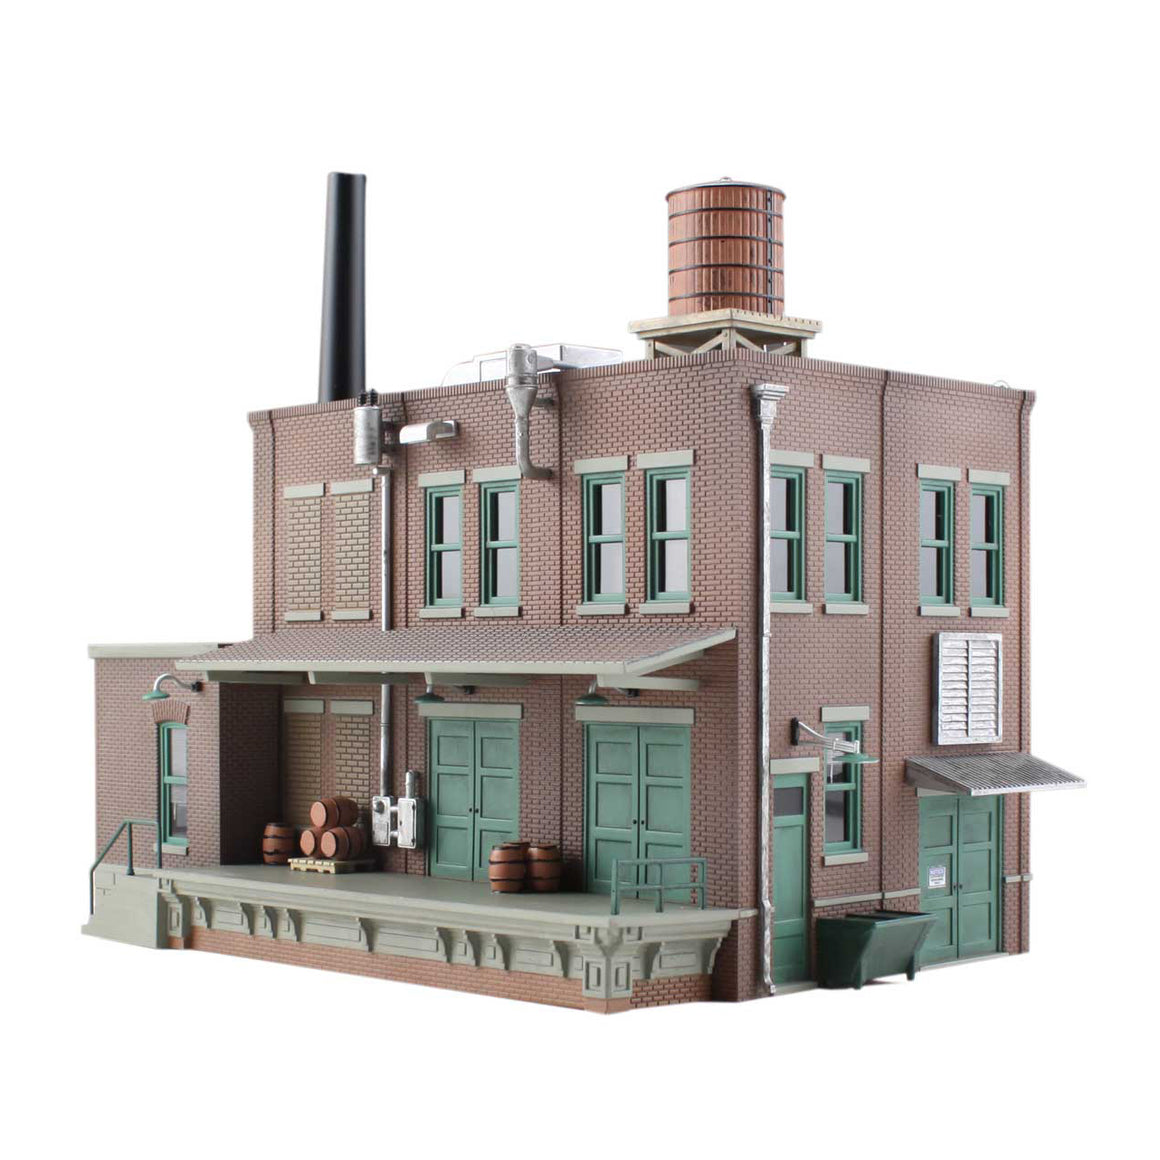 N Scale: Clyde & Dale's Barrel Factory